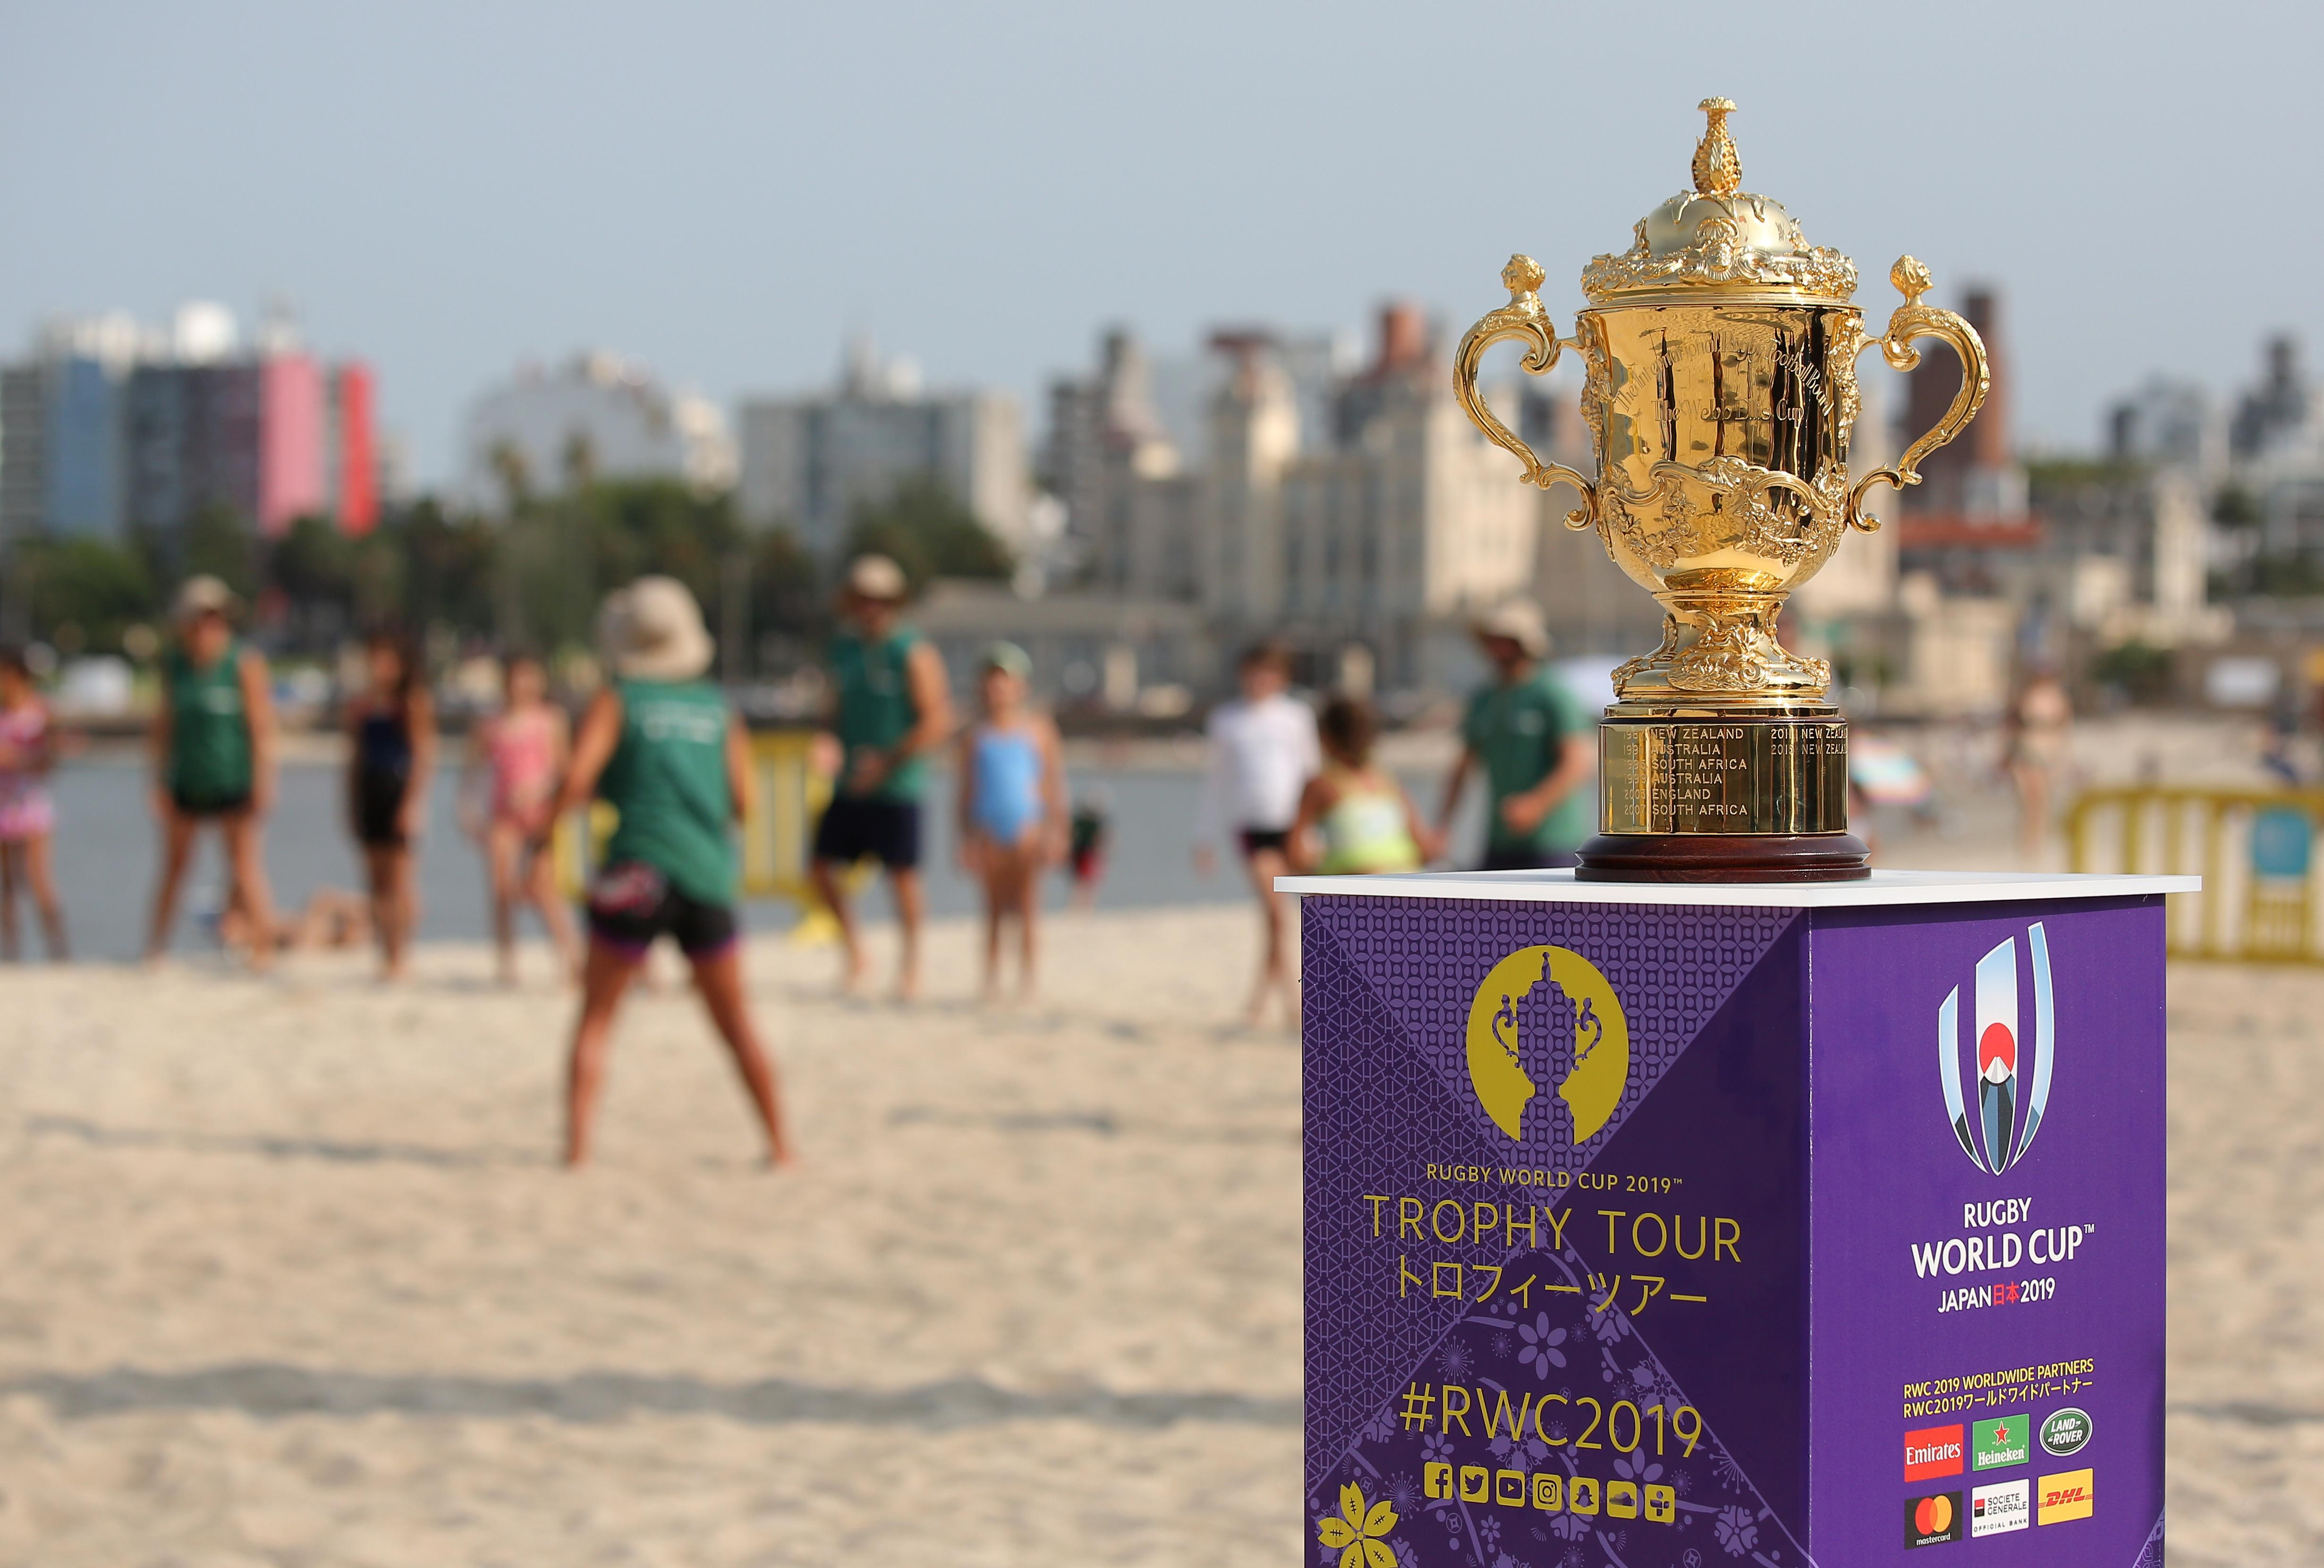 Rugby World Cup 2019 Trophy Tour Rounds Off A Successful Week For Uruguay Rugby World Cup Rugbyworldcup Com